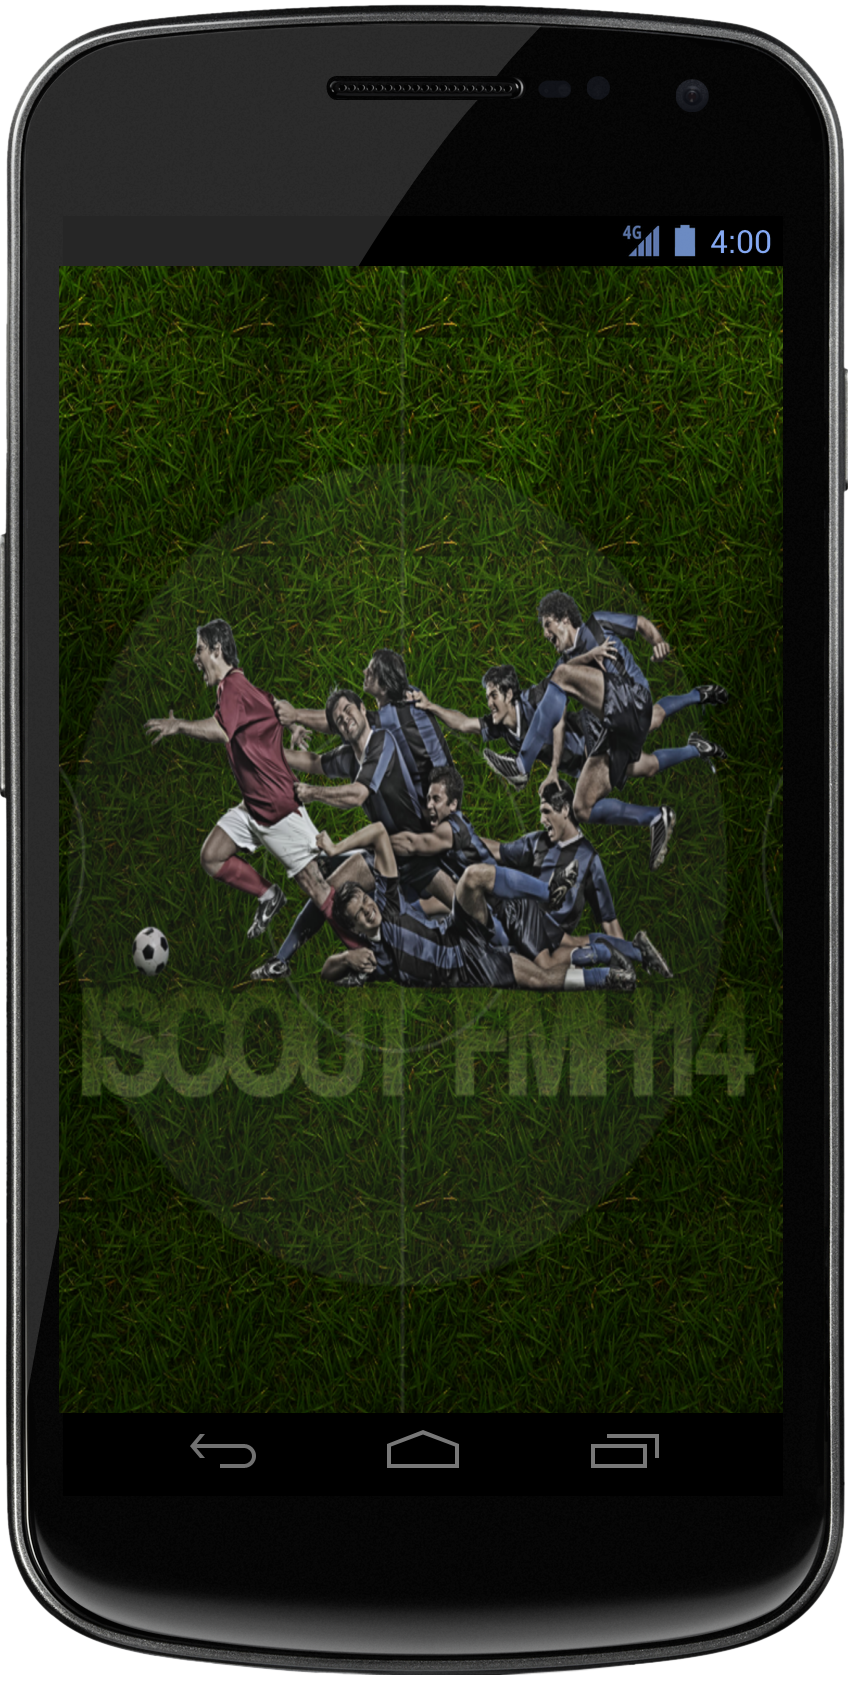 Load up the iScout FMH 2014 Android App.